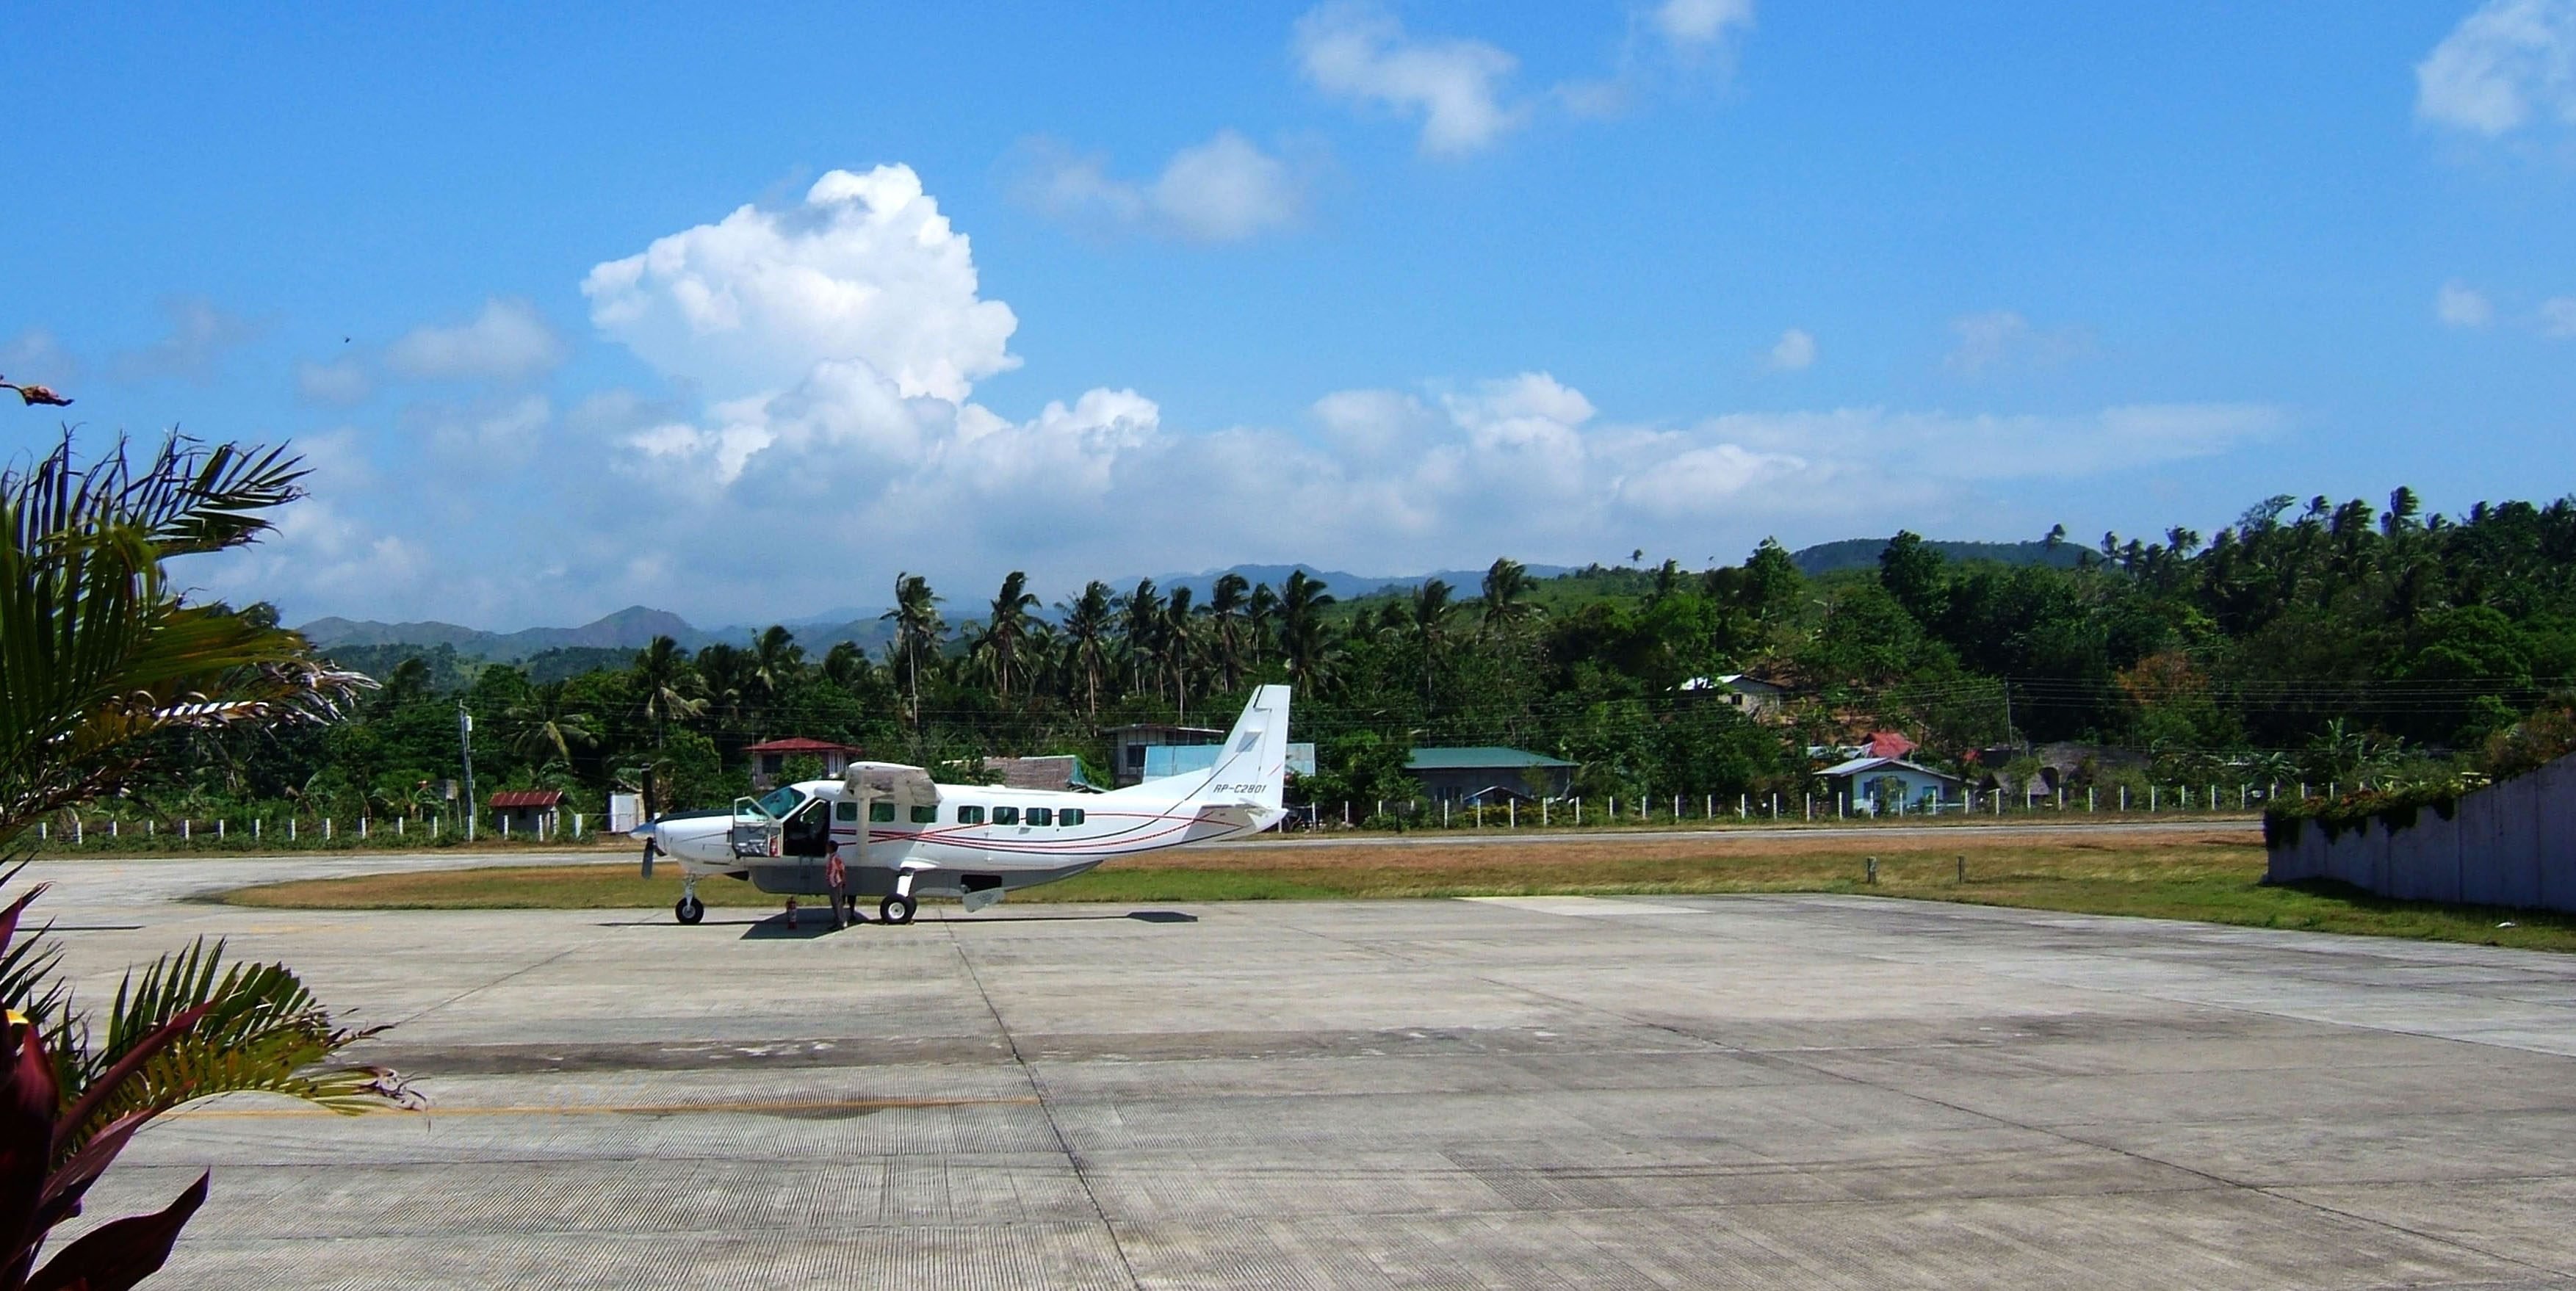 Philippines Airports Panay Negros Caticlan Airport Apr 2006 01